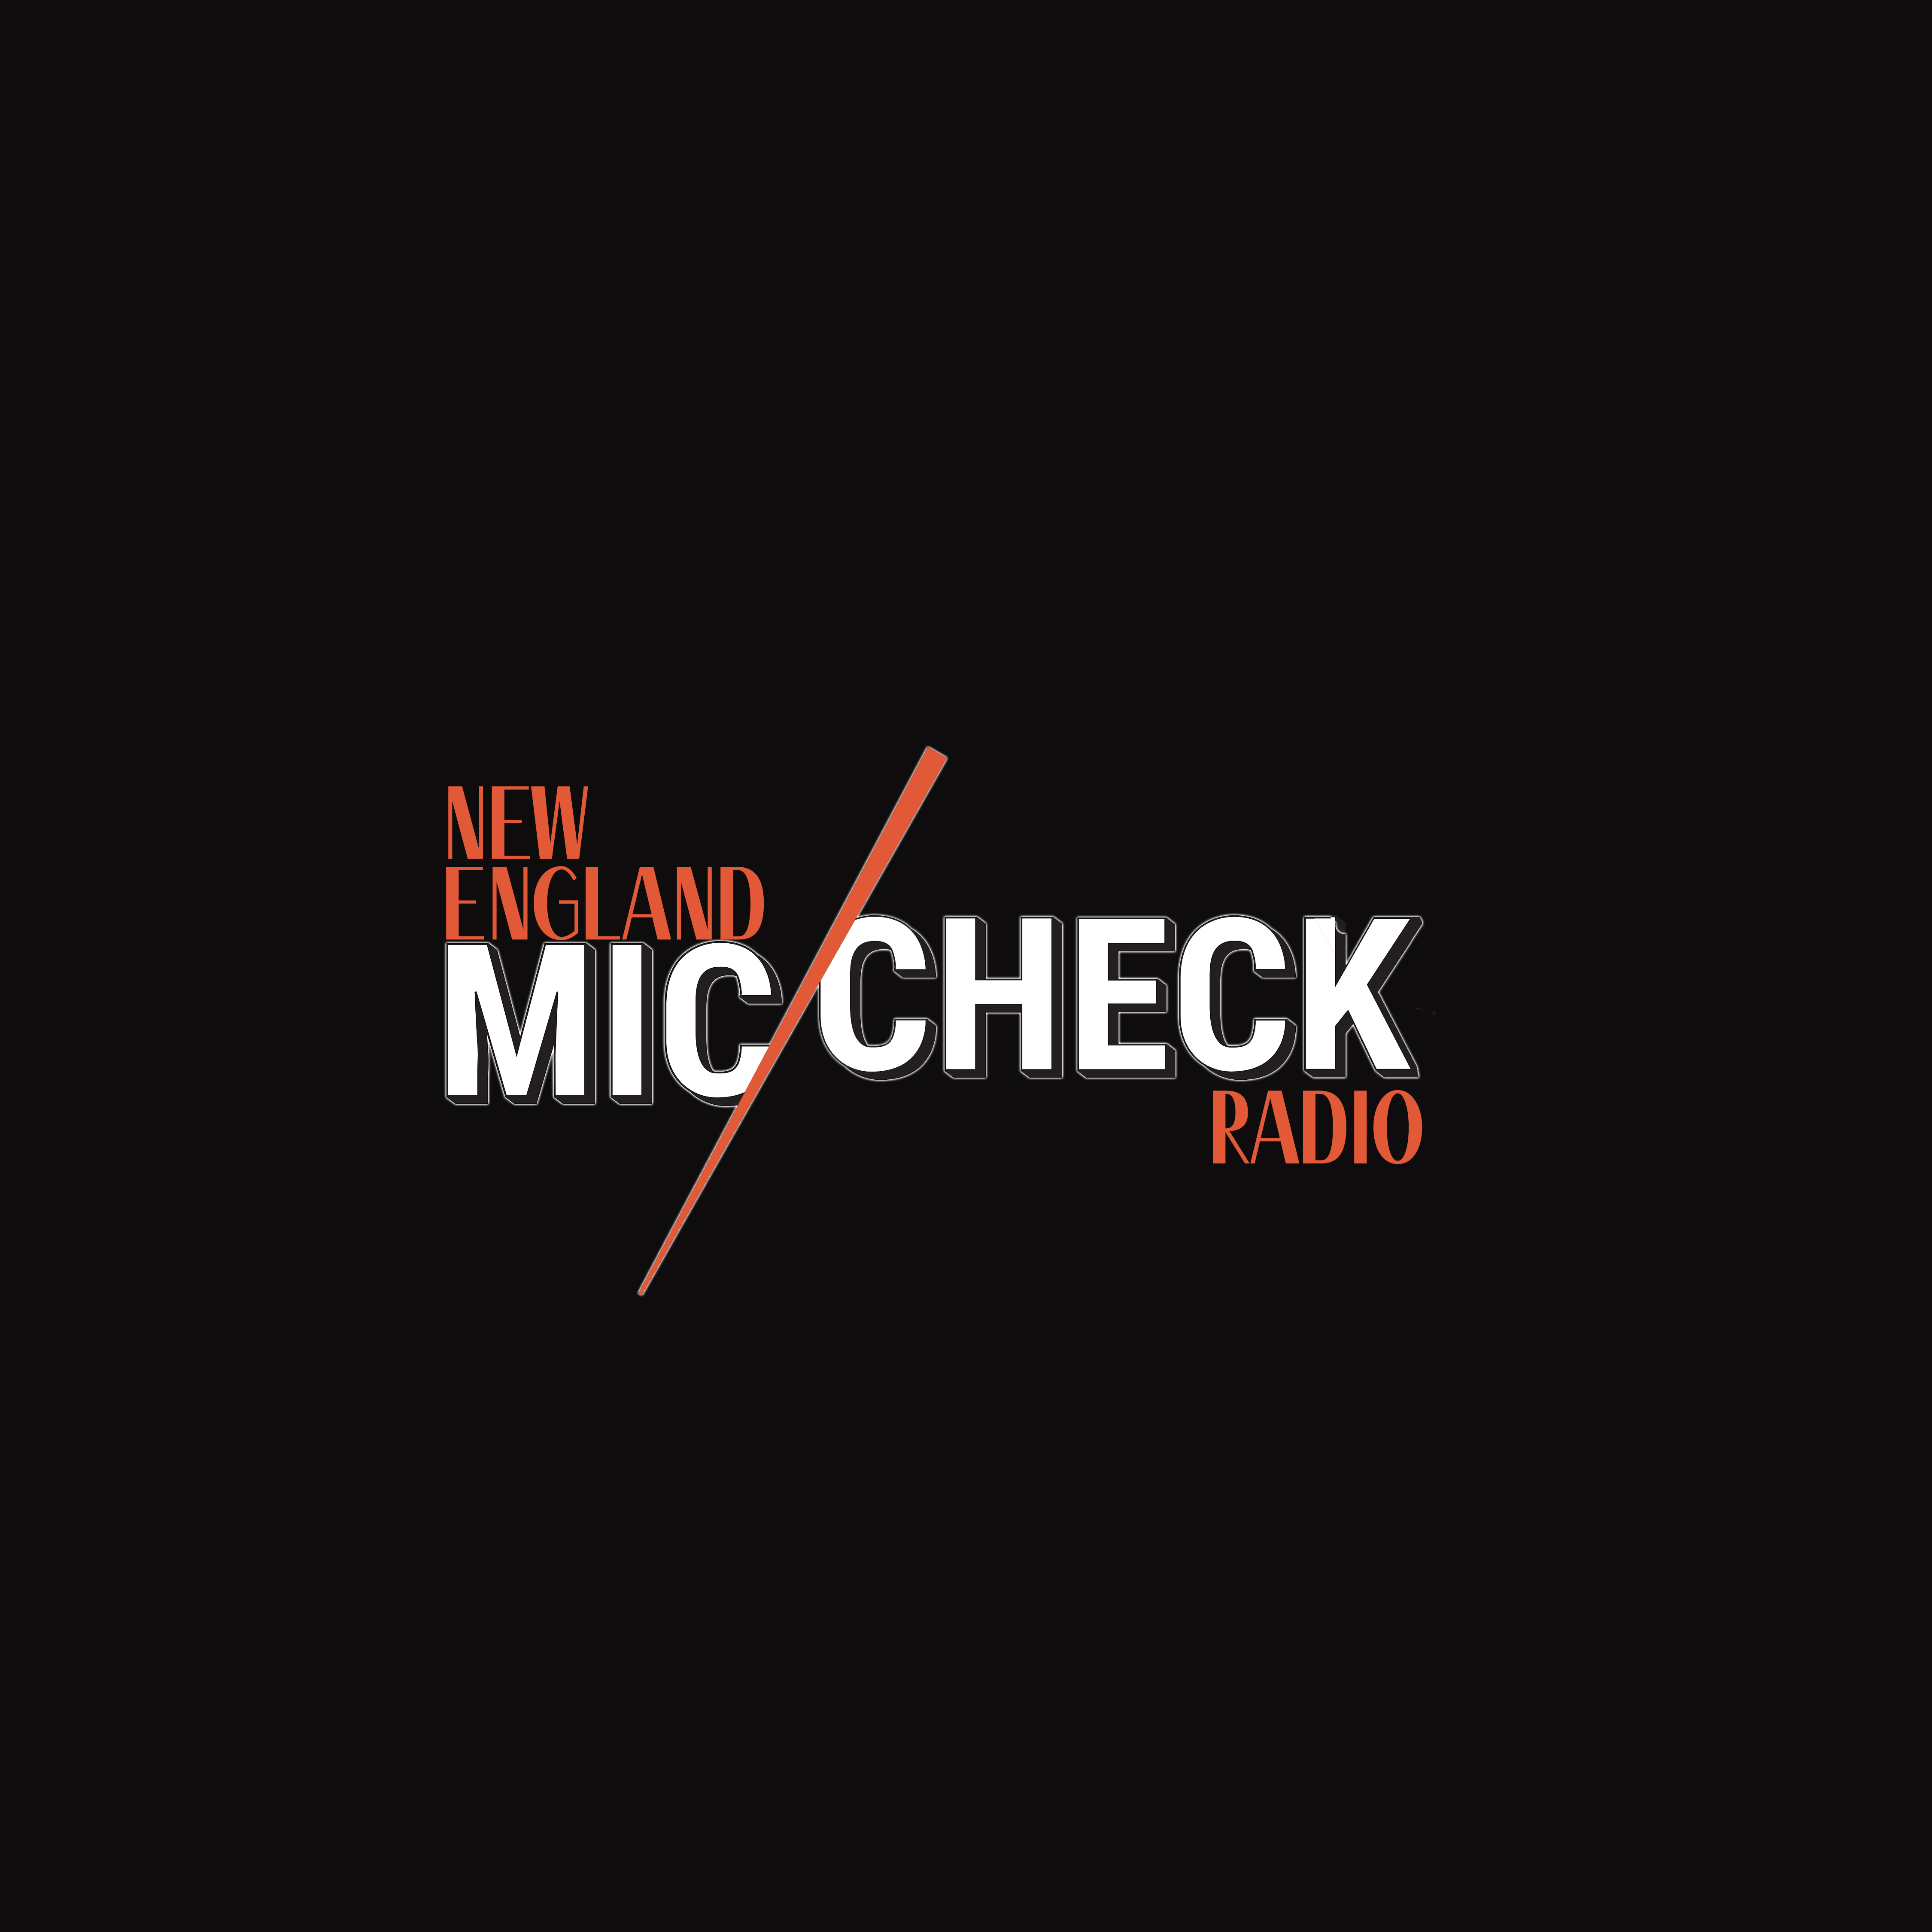 """New England Mic Check Radio - """"The Weekend Takeover featuring The Quiet Storm"""" Every Friday 12 noon - Sundays Midnight logo"""